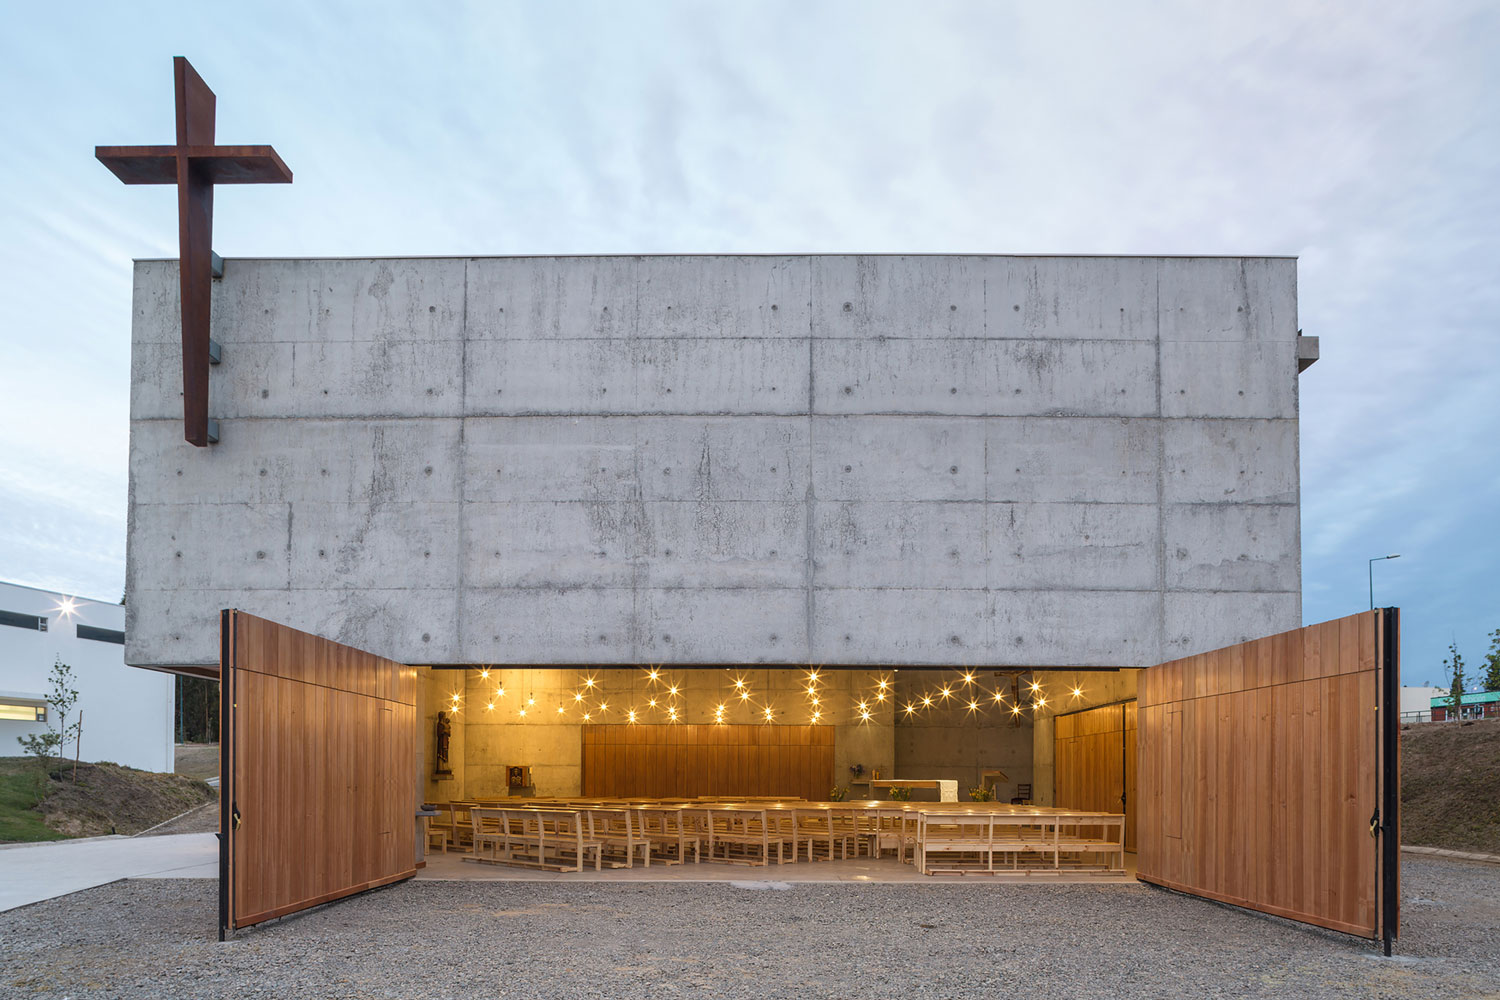 San Alberto Magno Chapel by Juan Pavez Aguilar & Jose Requesens Aldea | Yellowtrace